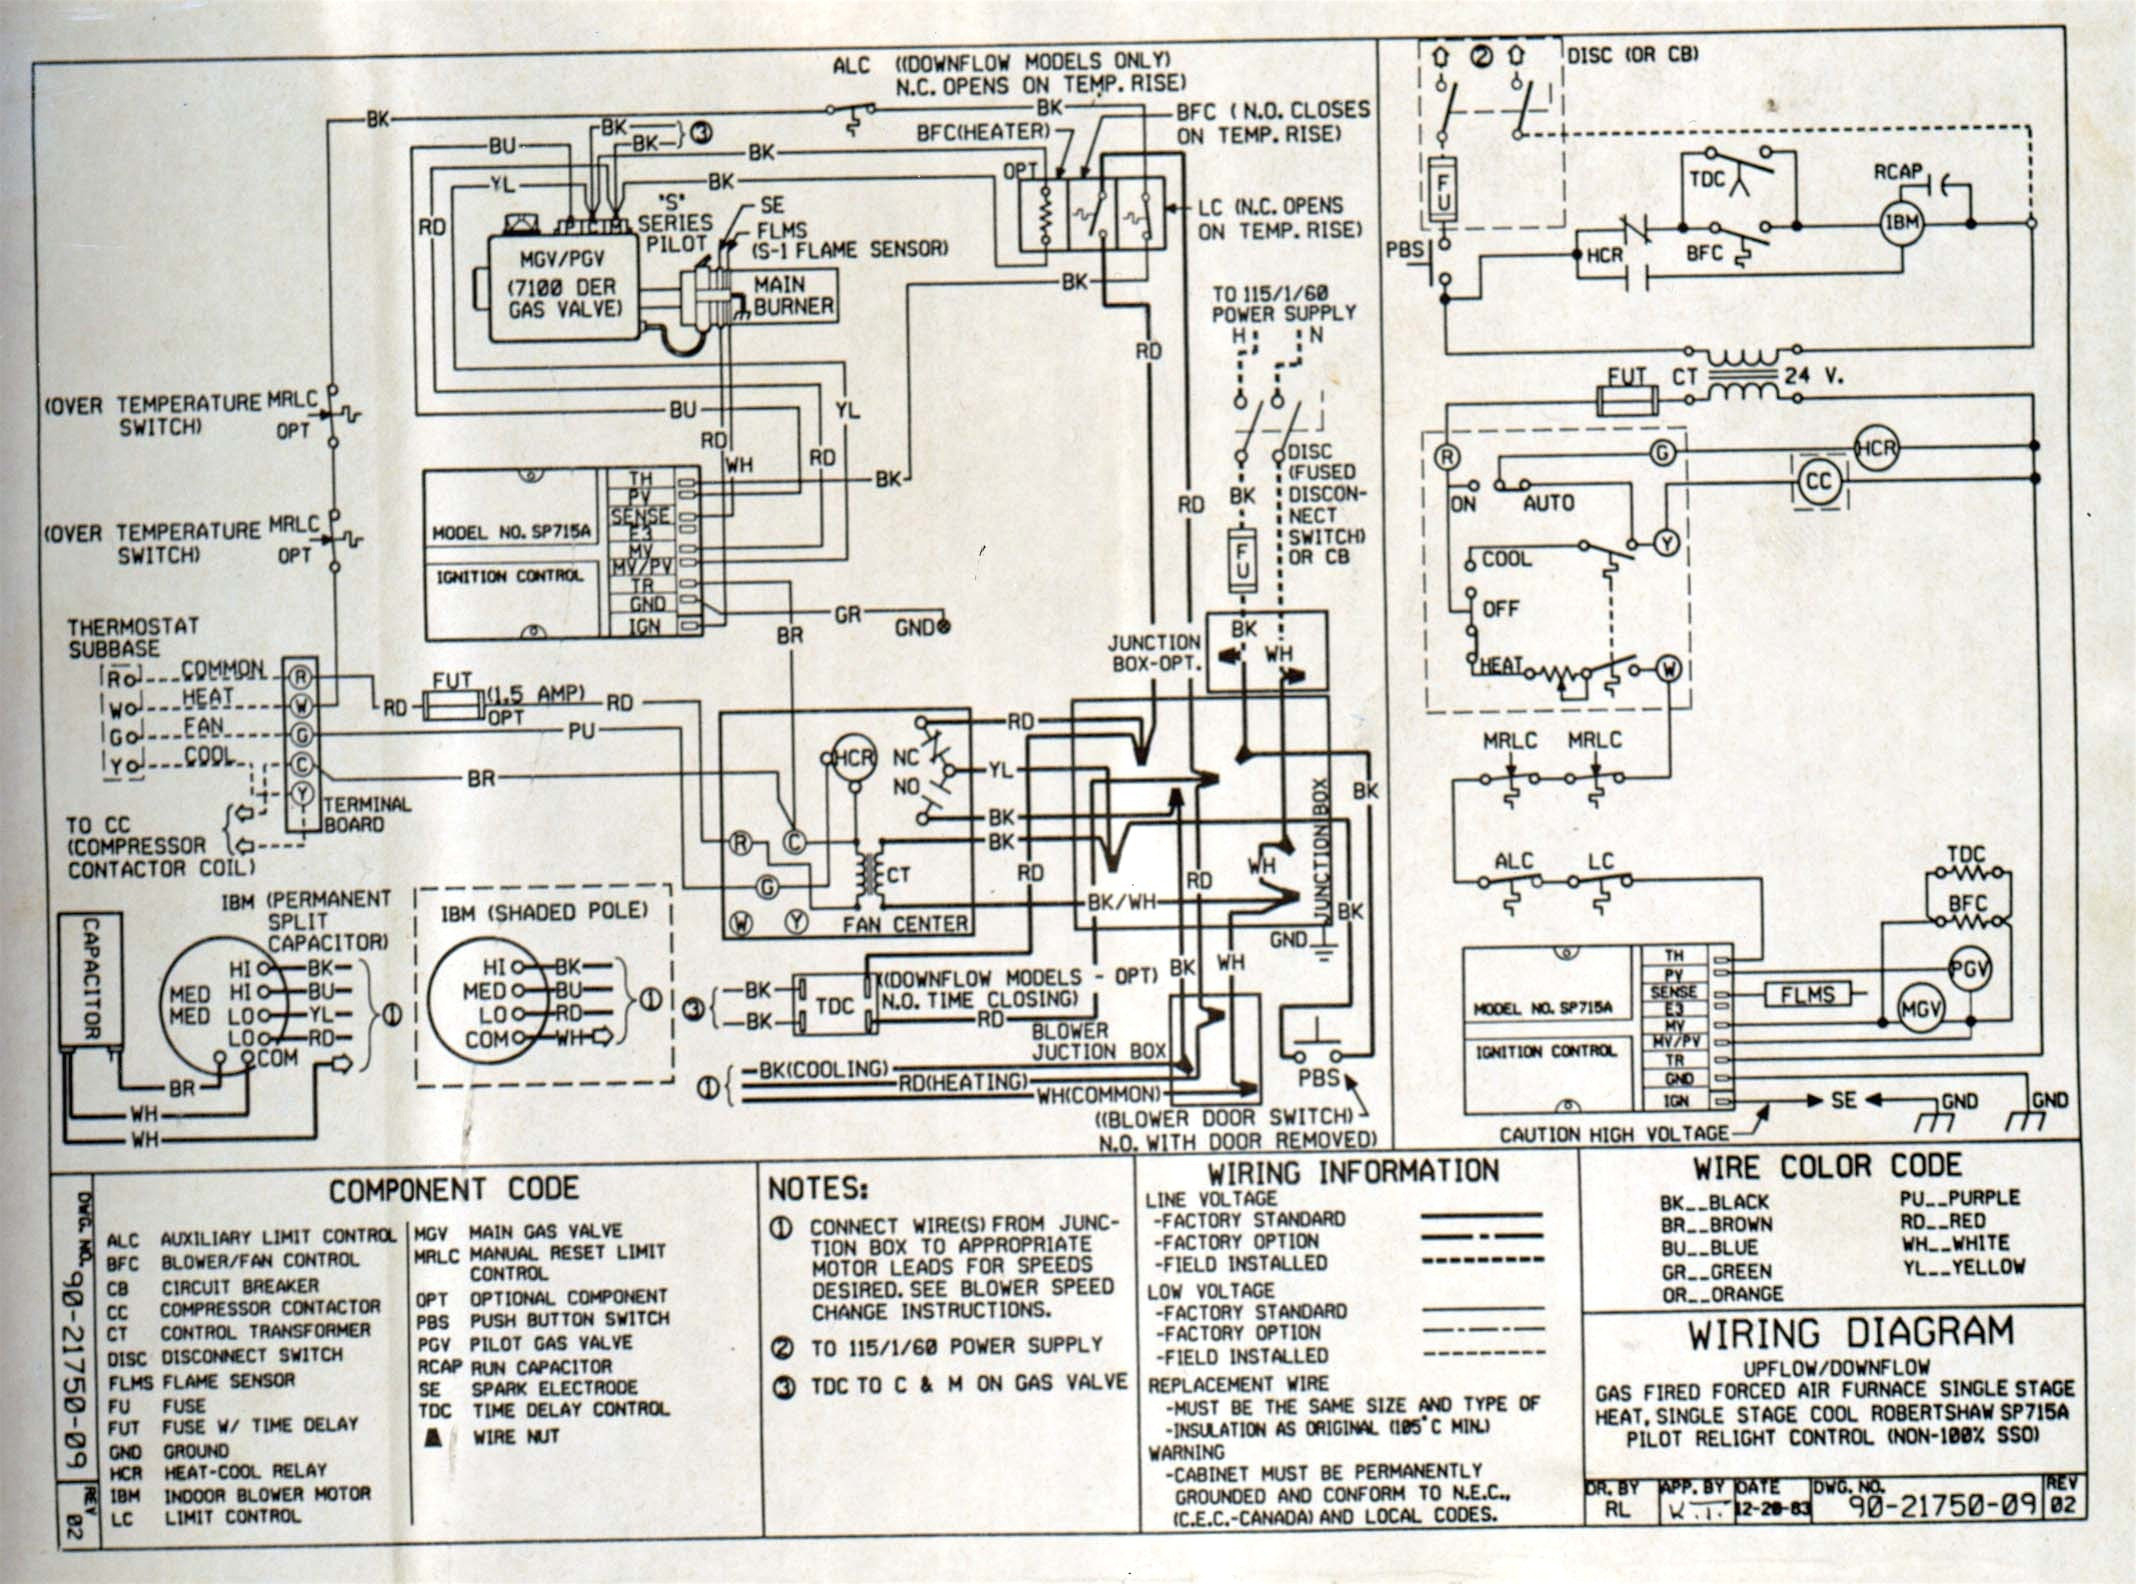 goodman package unit wiring diagram Collection-goodman gas pack wiring diagram example electrical wiring diagram u2022 rh cranejapan co Goodman Furnace Wiring Diagram Goodman Furnace Wiring Diagram 20-n